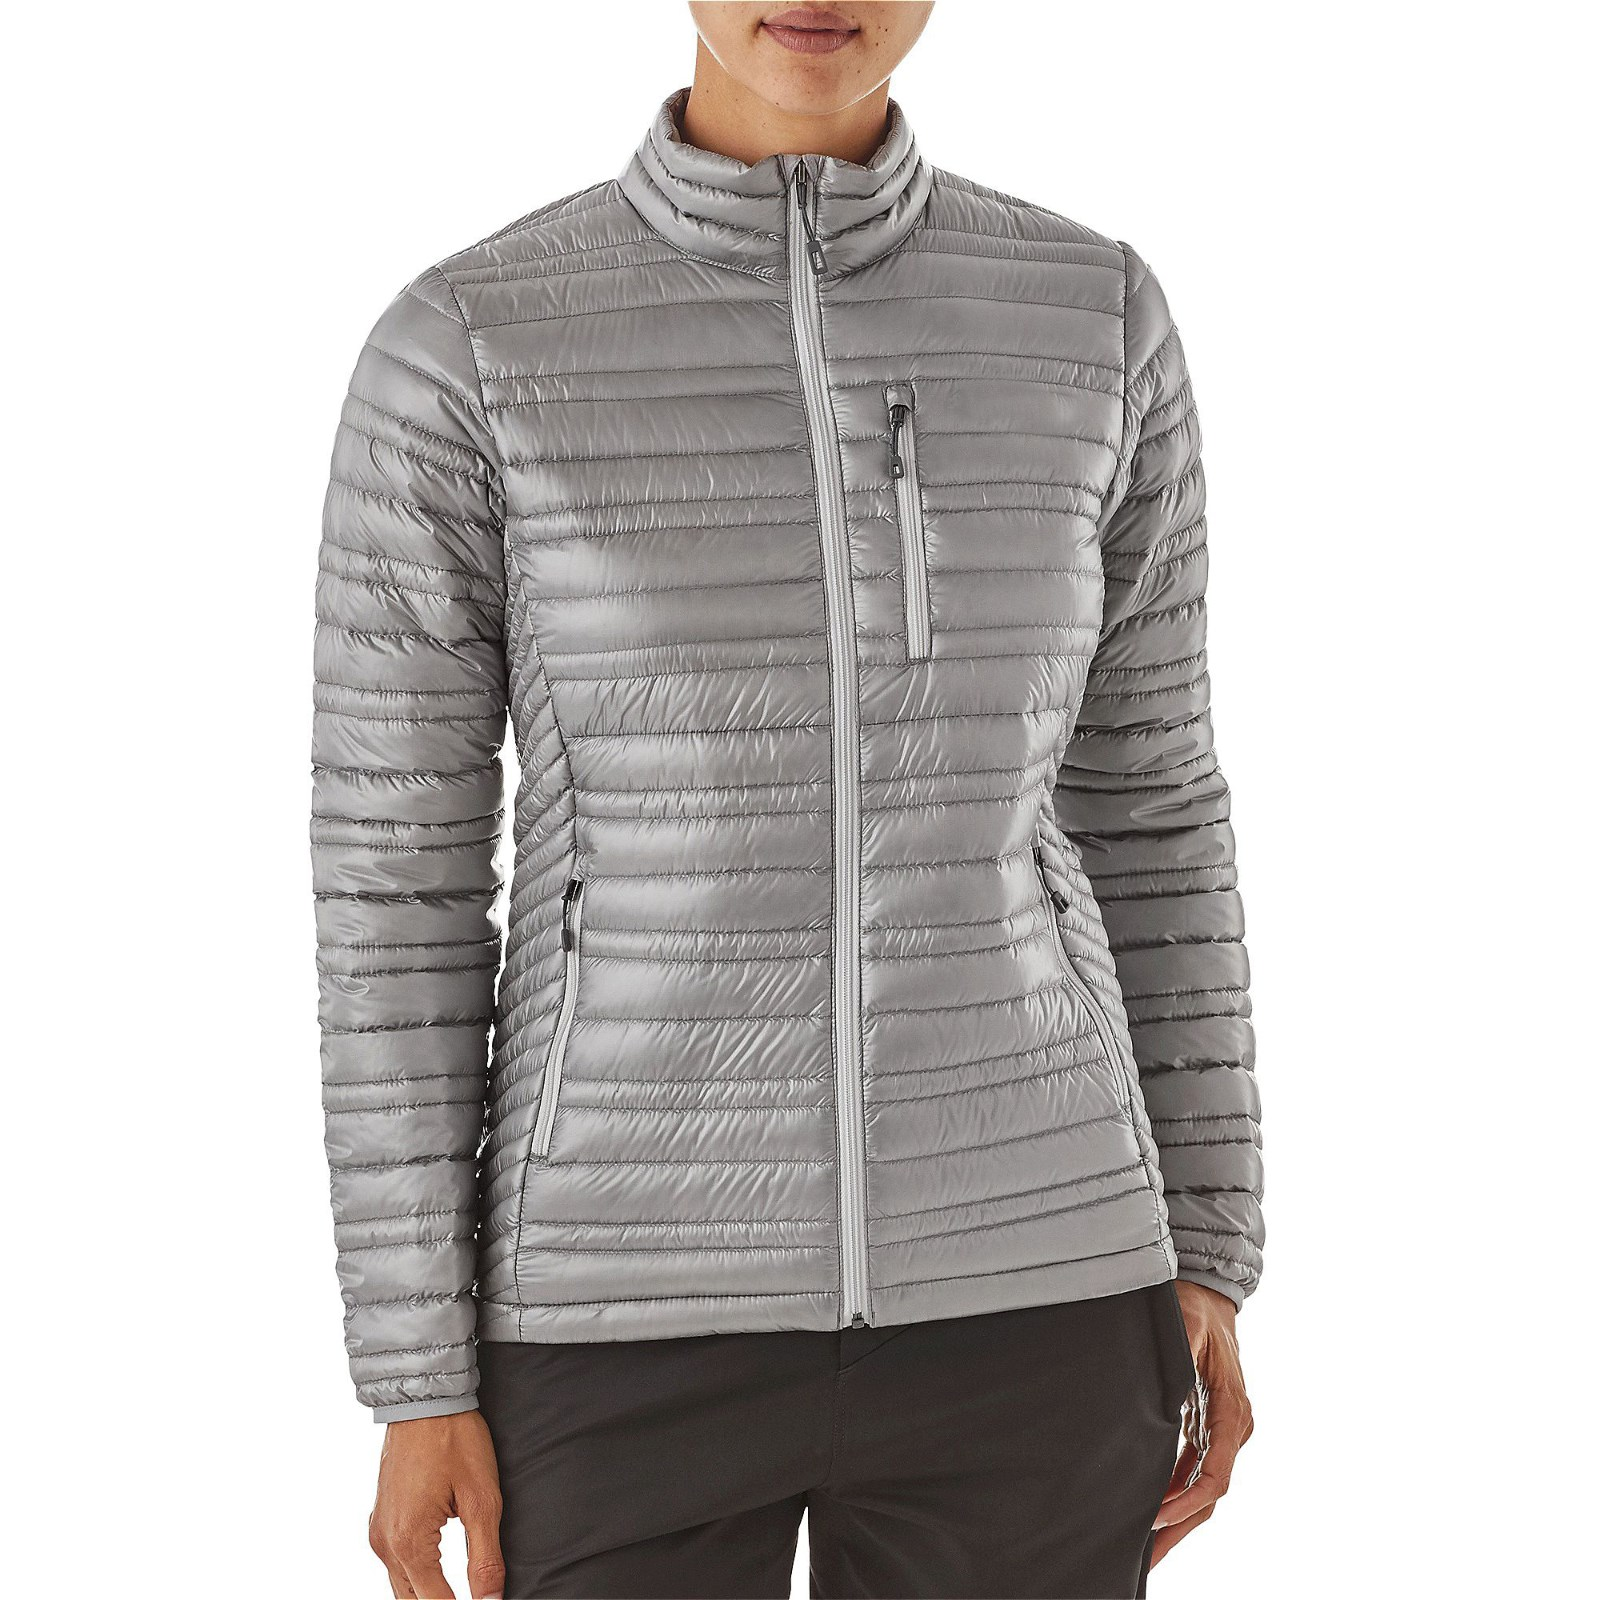 Women's Ultralight Down Jacket Manufacturers, Women's Ultralight Down Jacket Factory, Supply Women's Ultralight Down Jacket